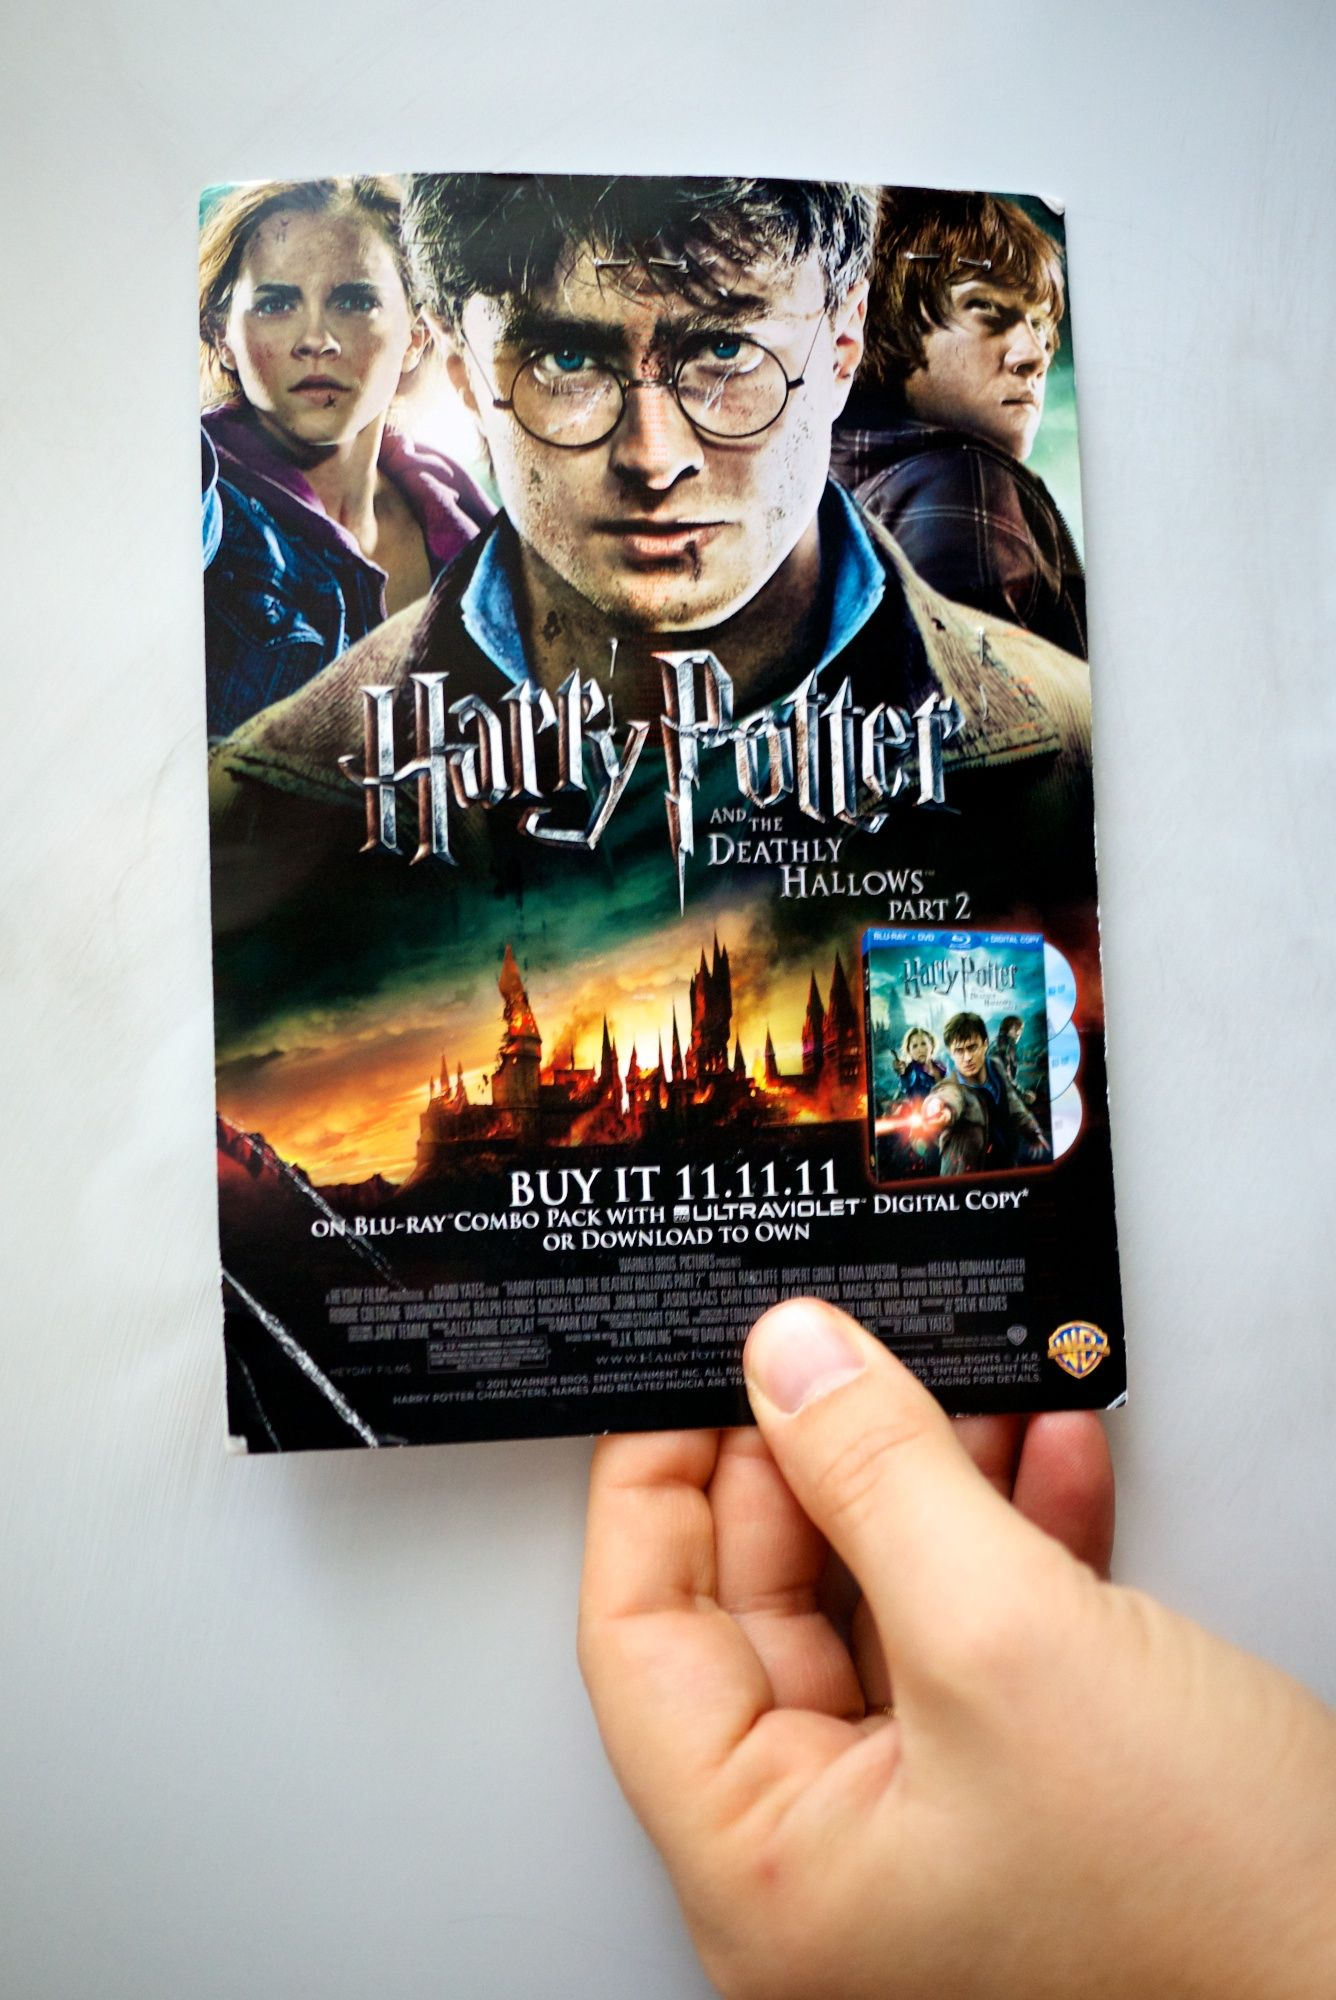 potter-in-the-post 6556606757 o